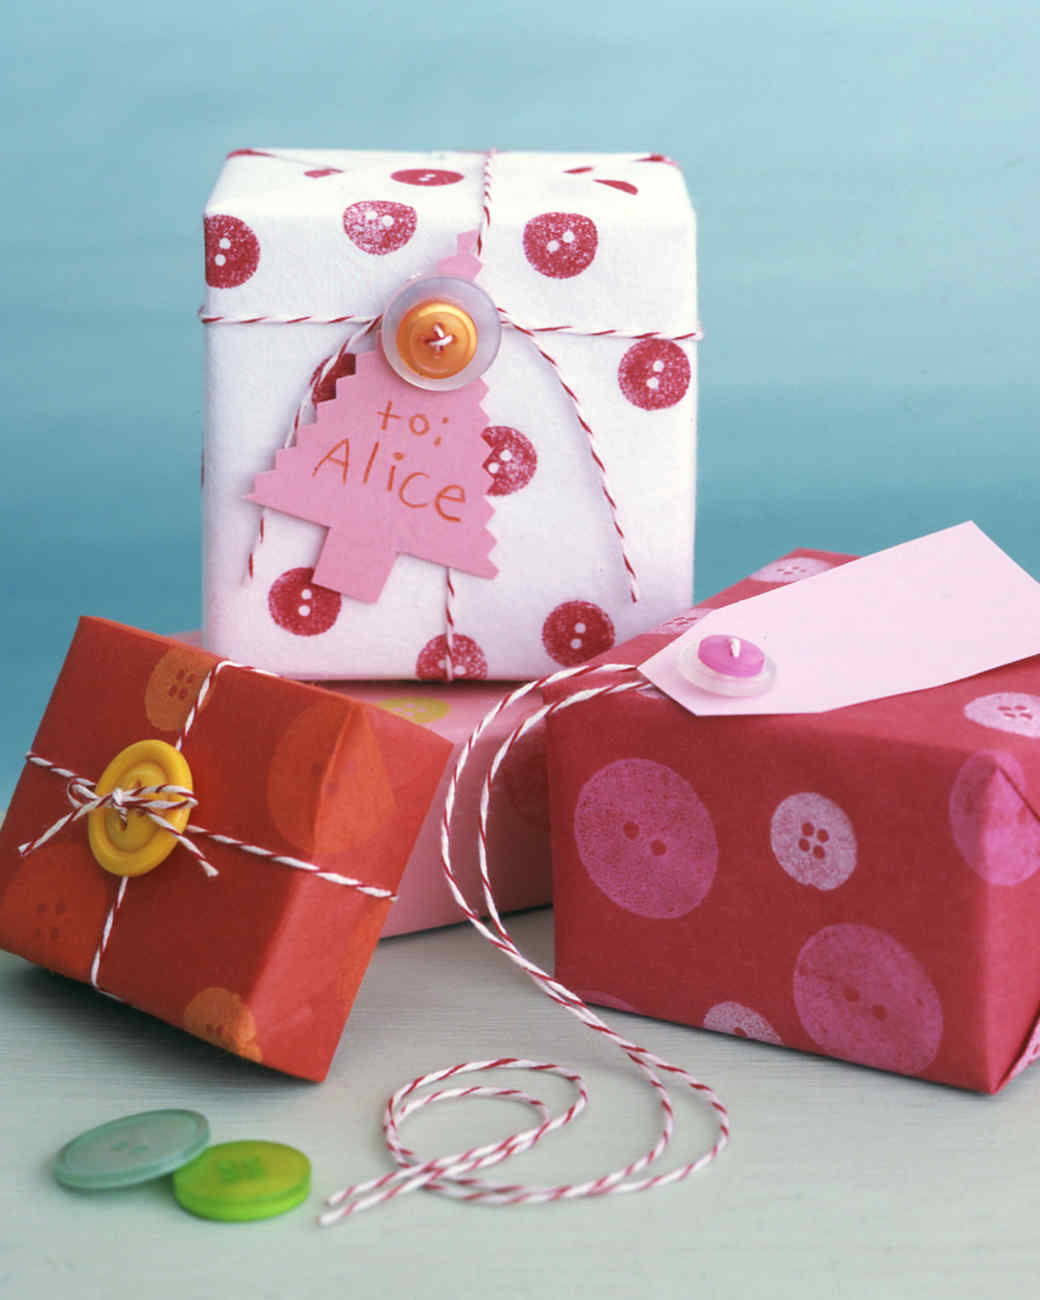 Gift-Wrapping Ideas for Kids | Martha Stewart